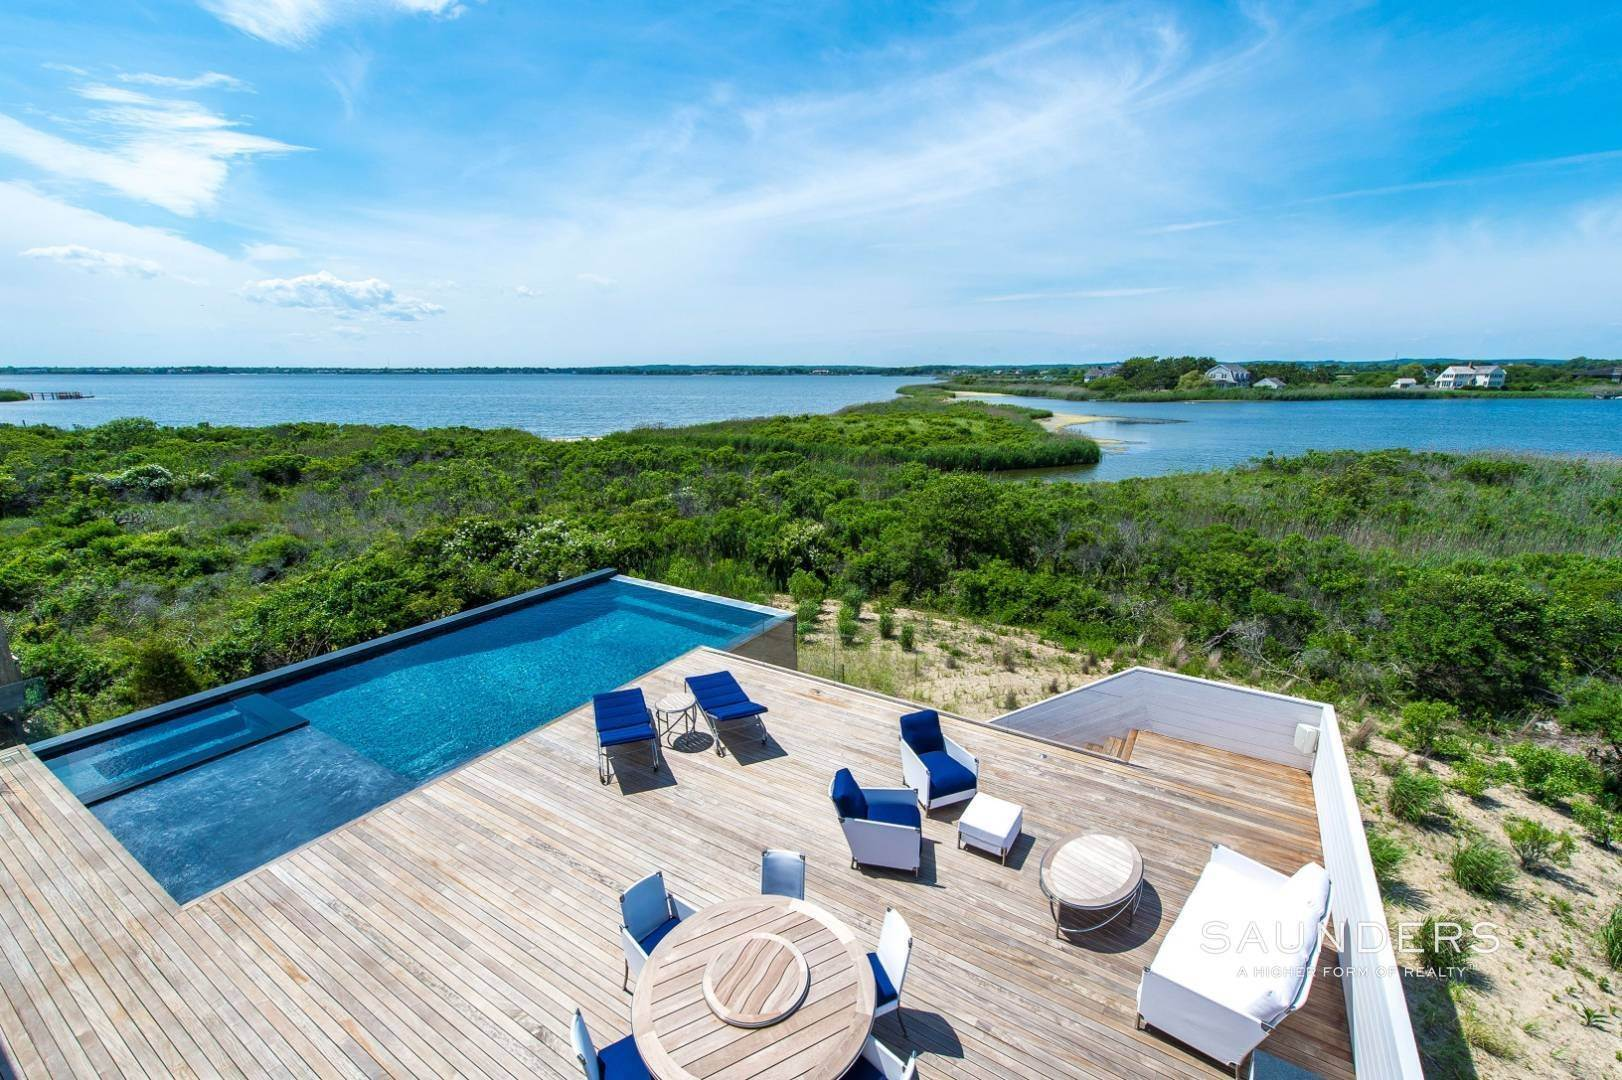 Single Family Homes for Sale at Modern Bridgehampton Bayfront 40 Dune Road, Bridgehampton, Southampton Town, NY 11932